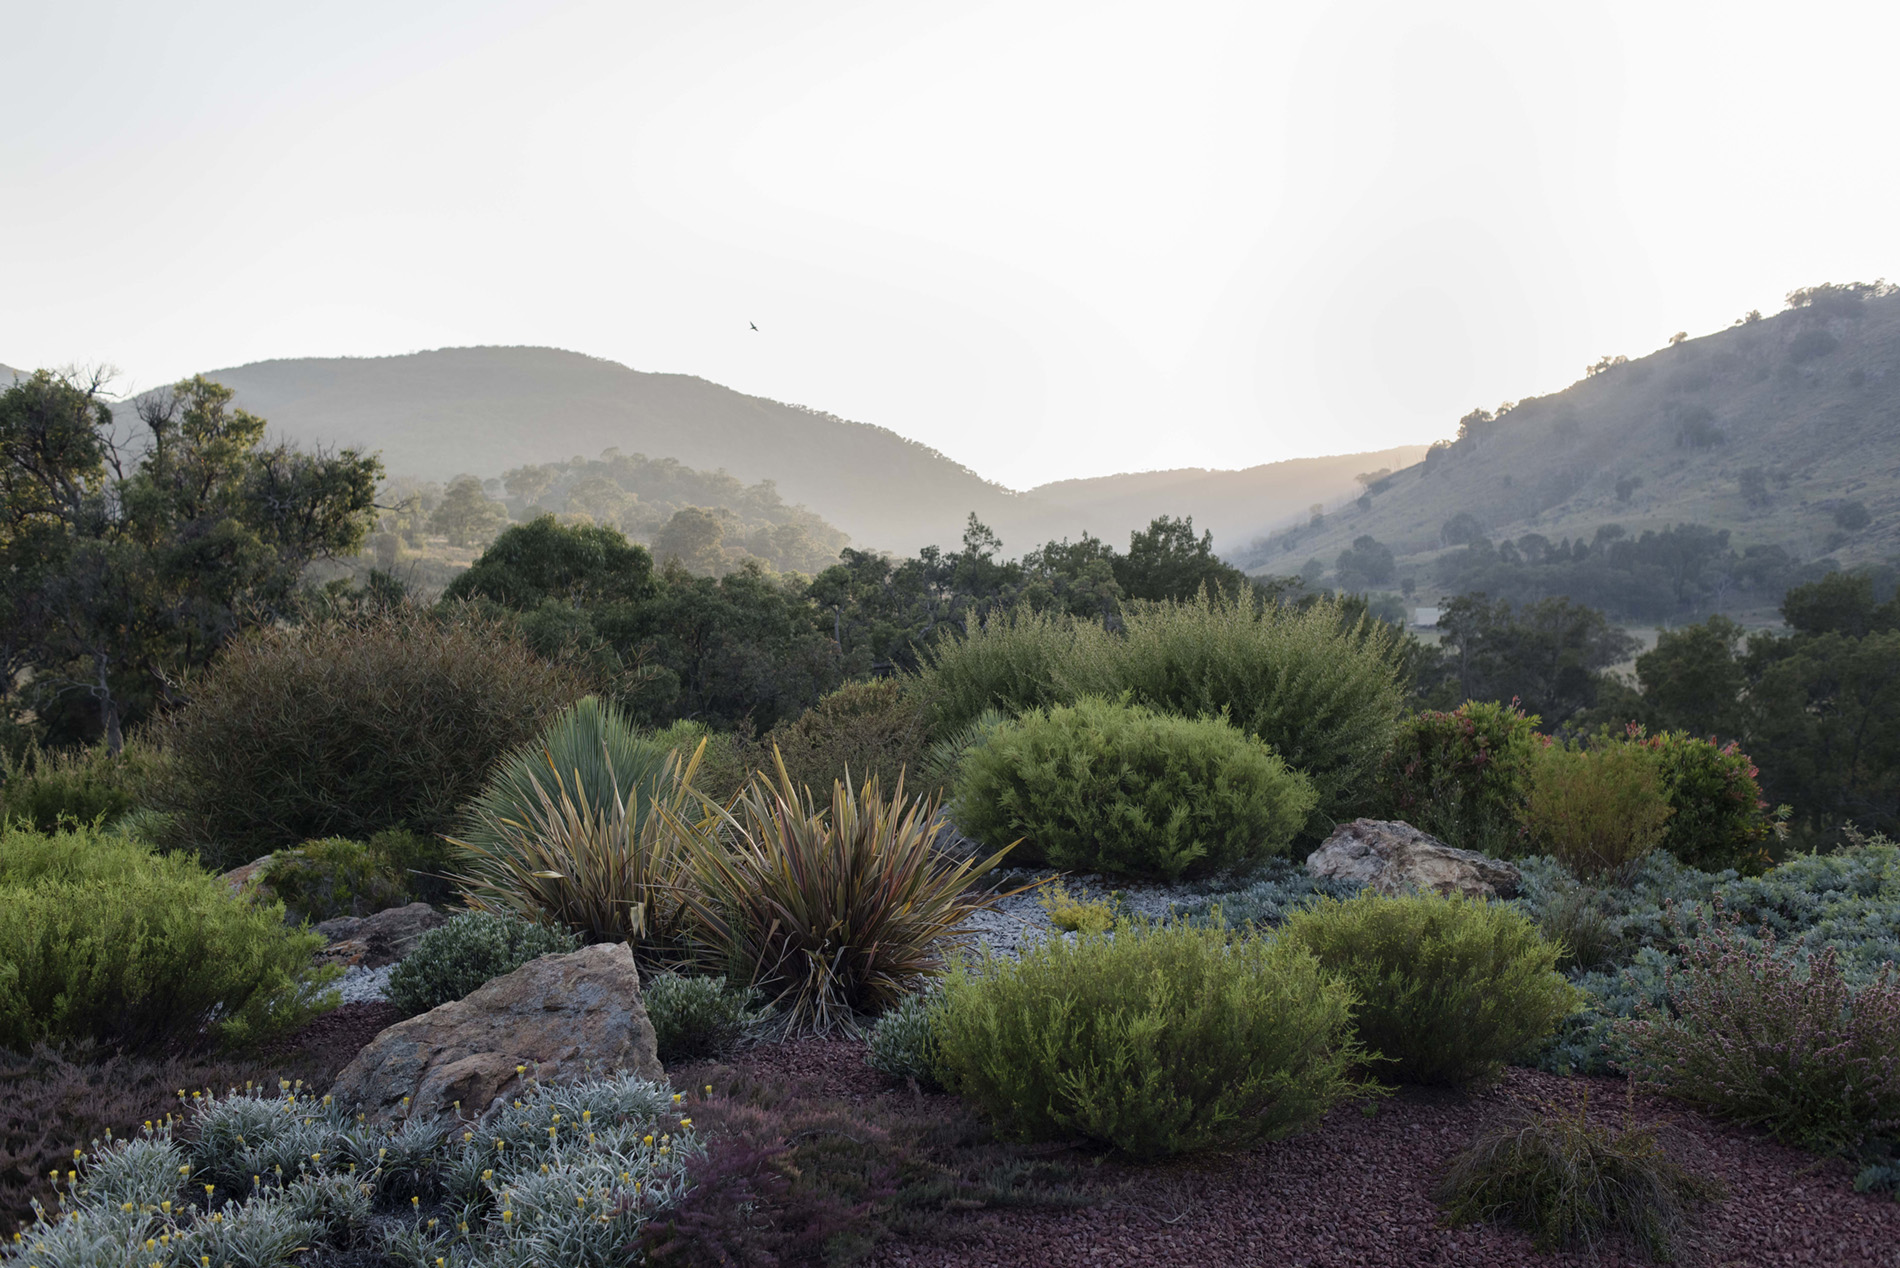 A photograph of a garden of low bushes with mountains in the distance.